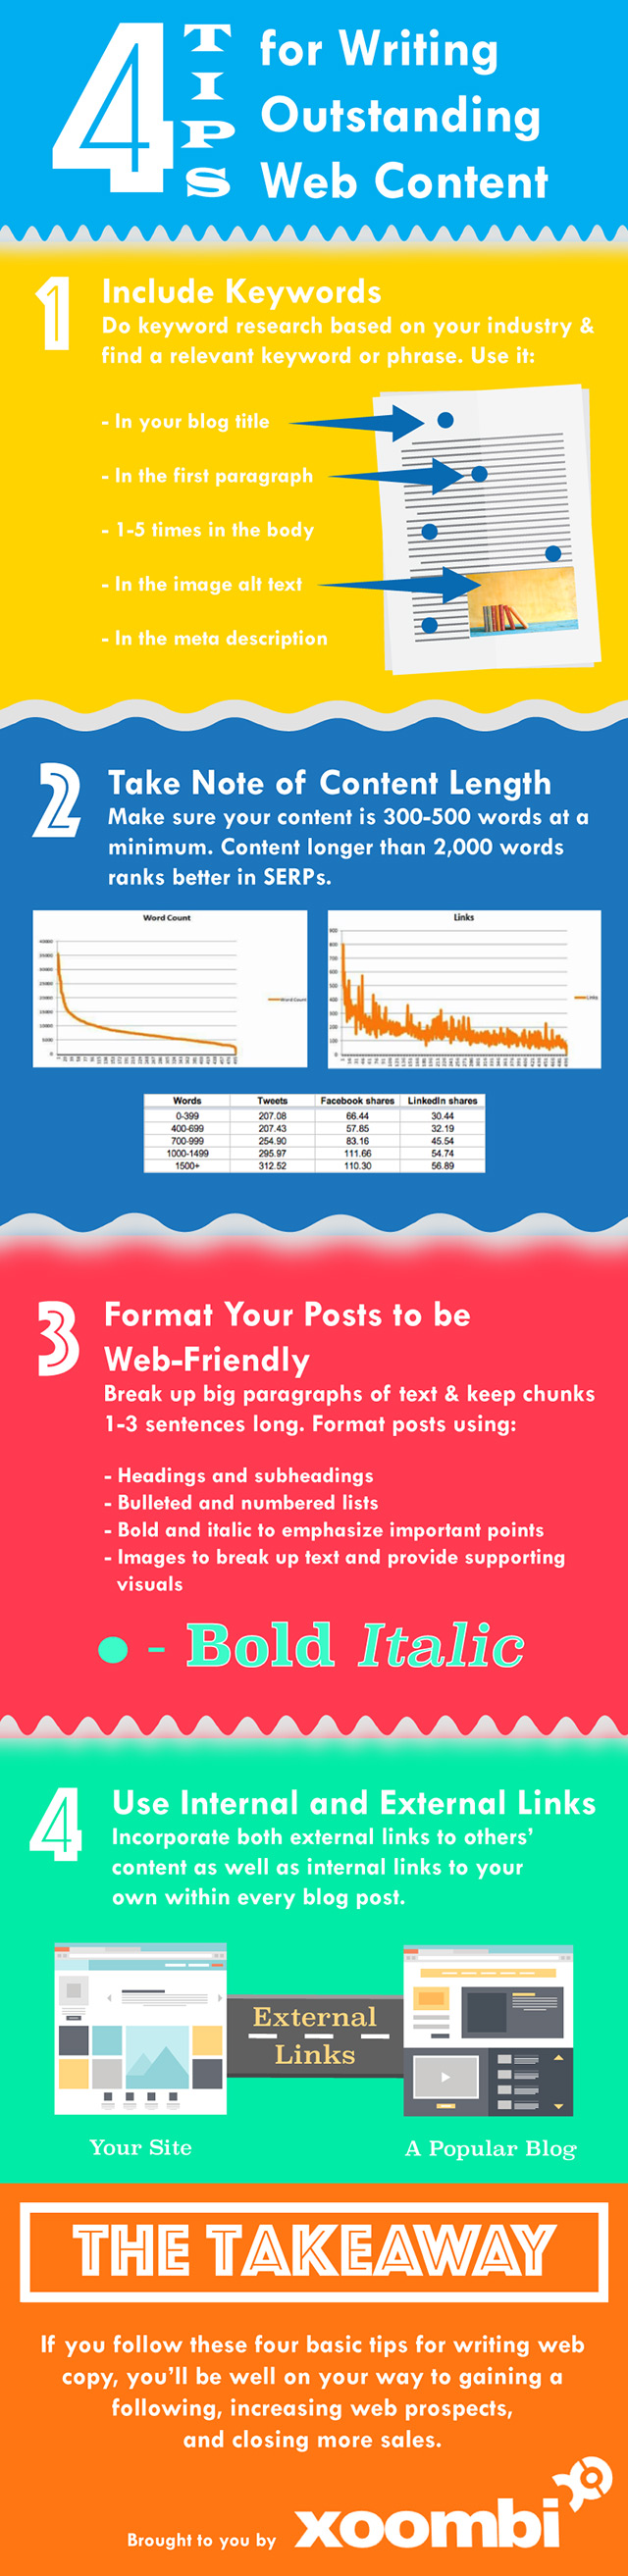 Writing-Content-Infographic-3